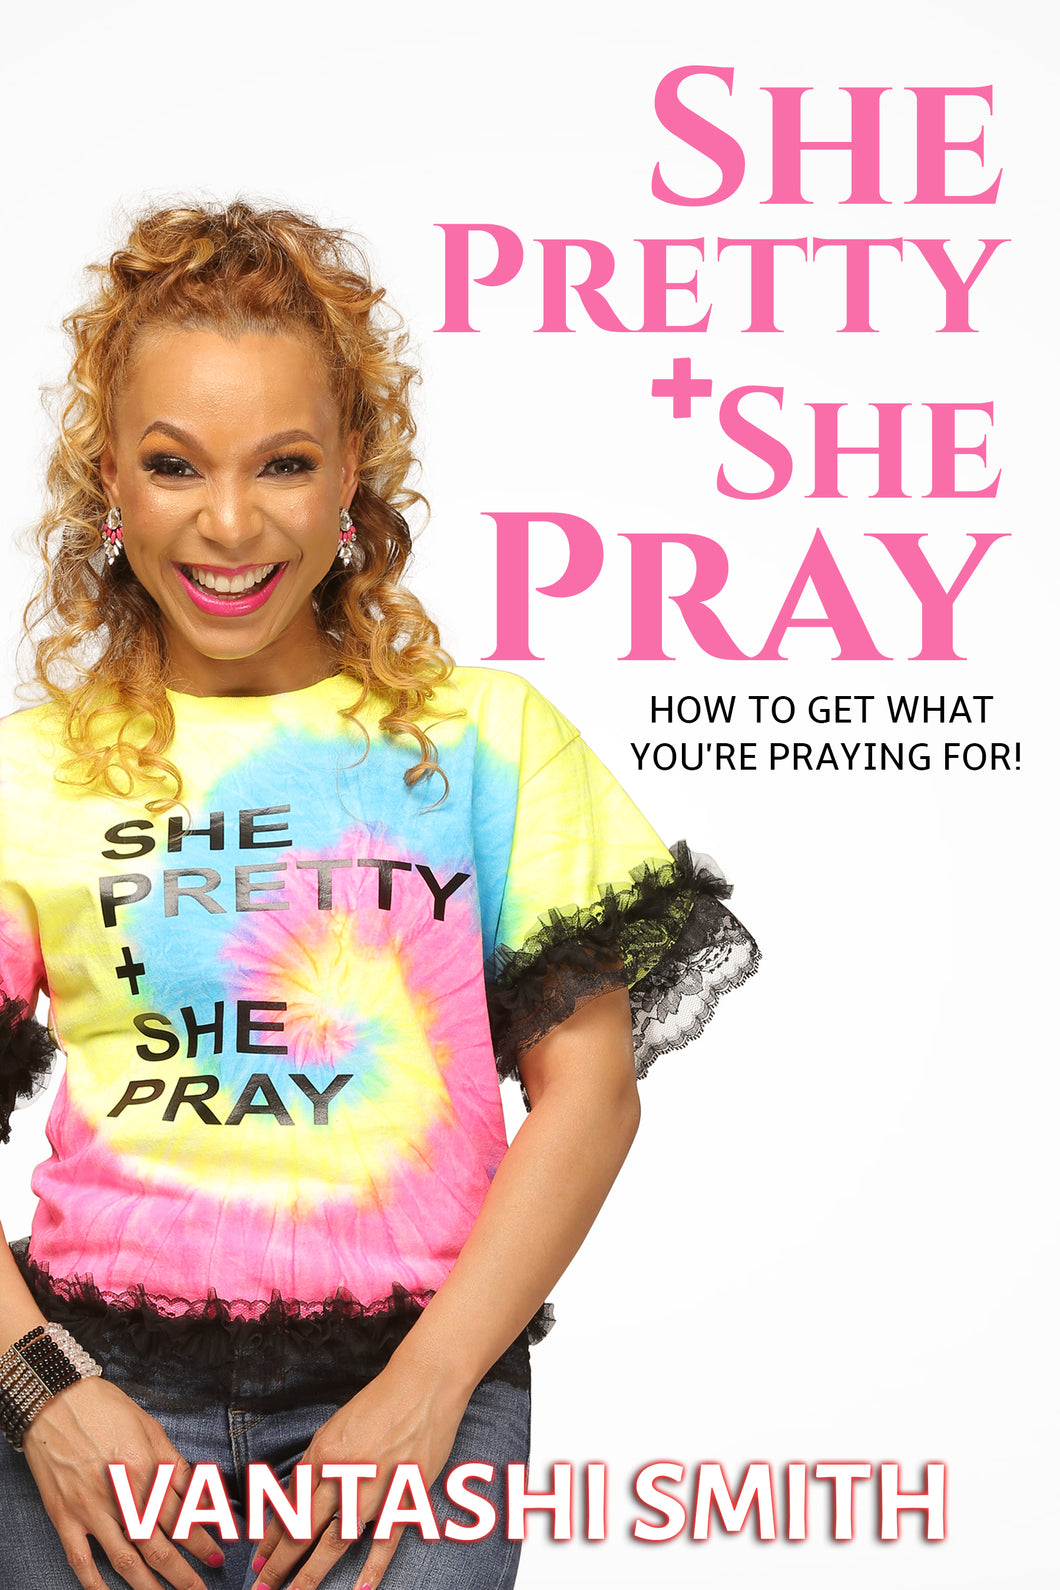 SHE PRETTY + SHE PRAY DEVOTIONAL